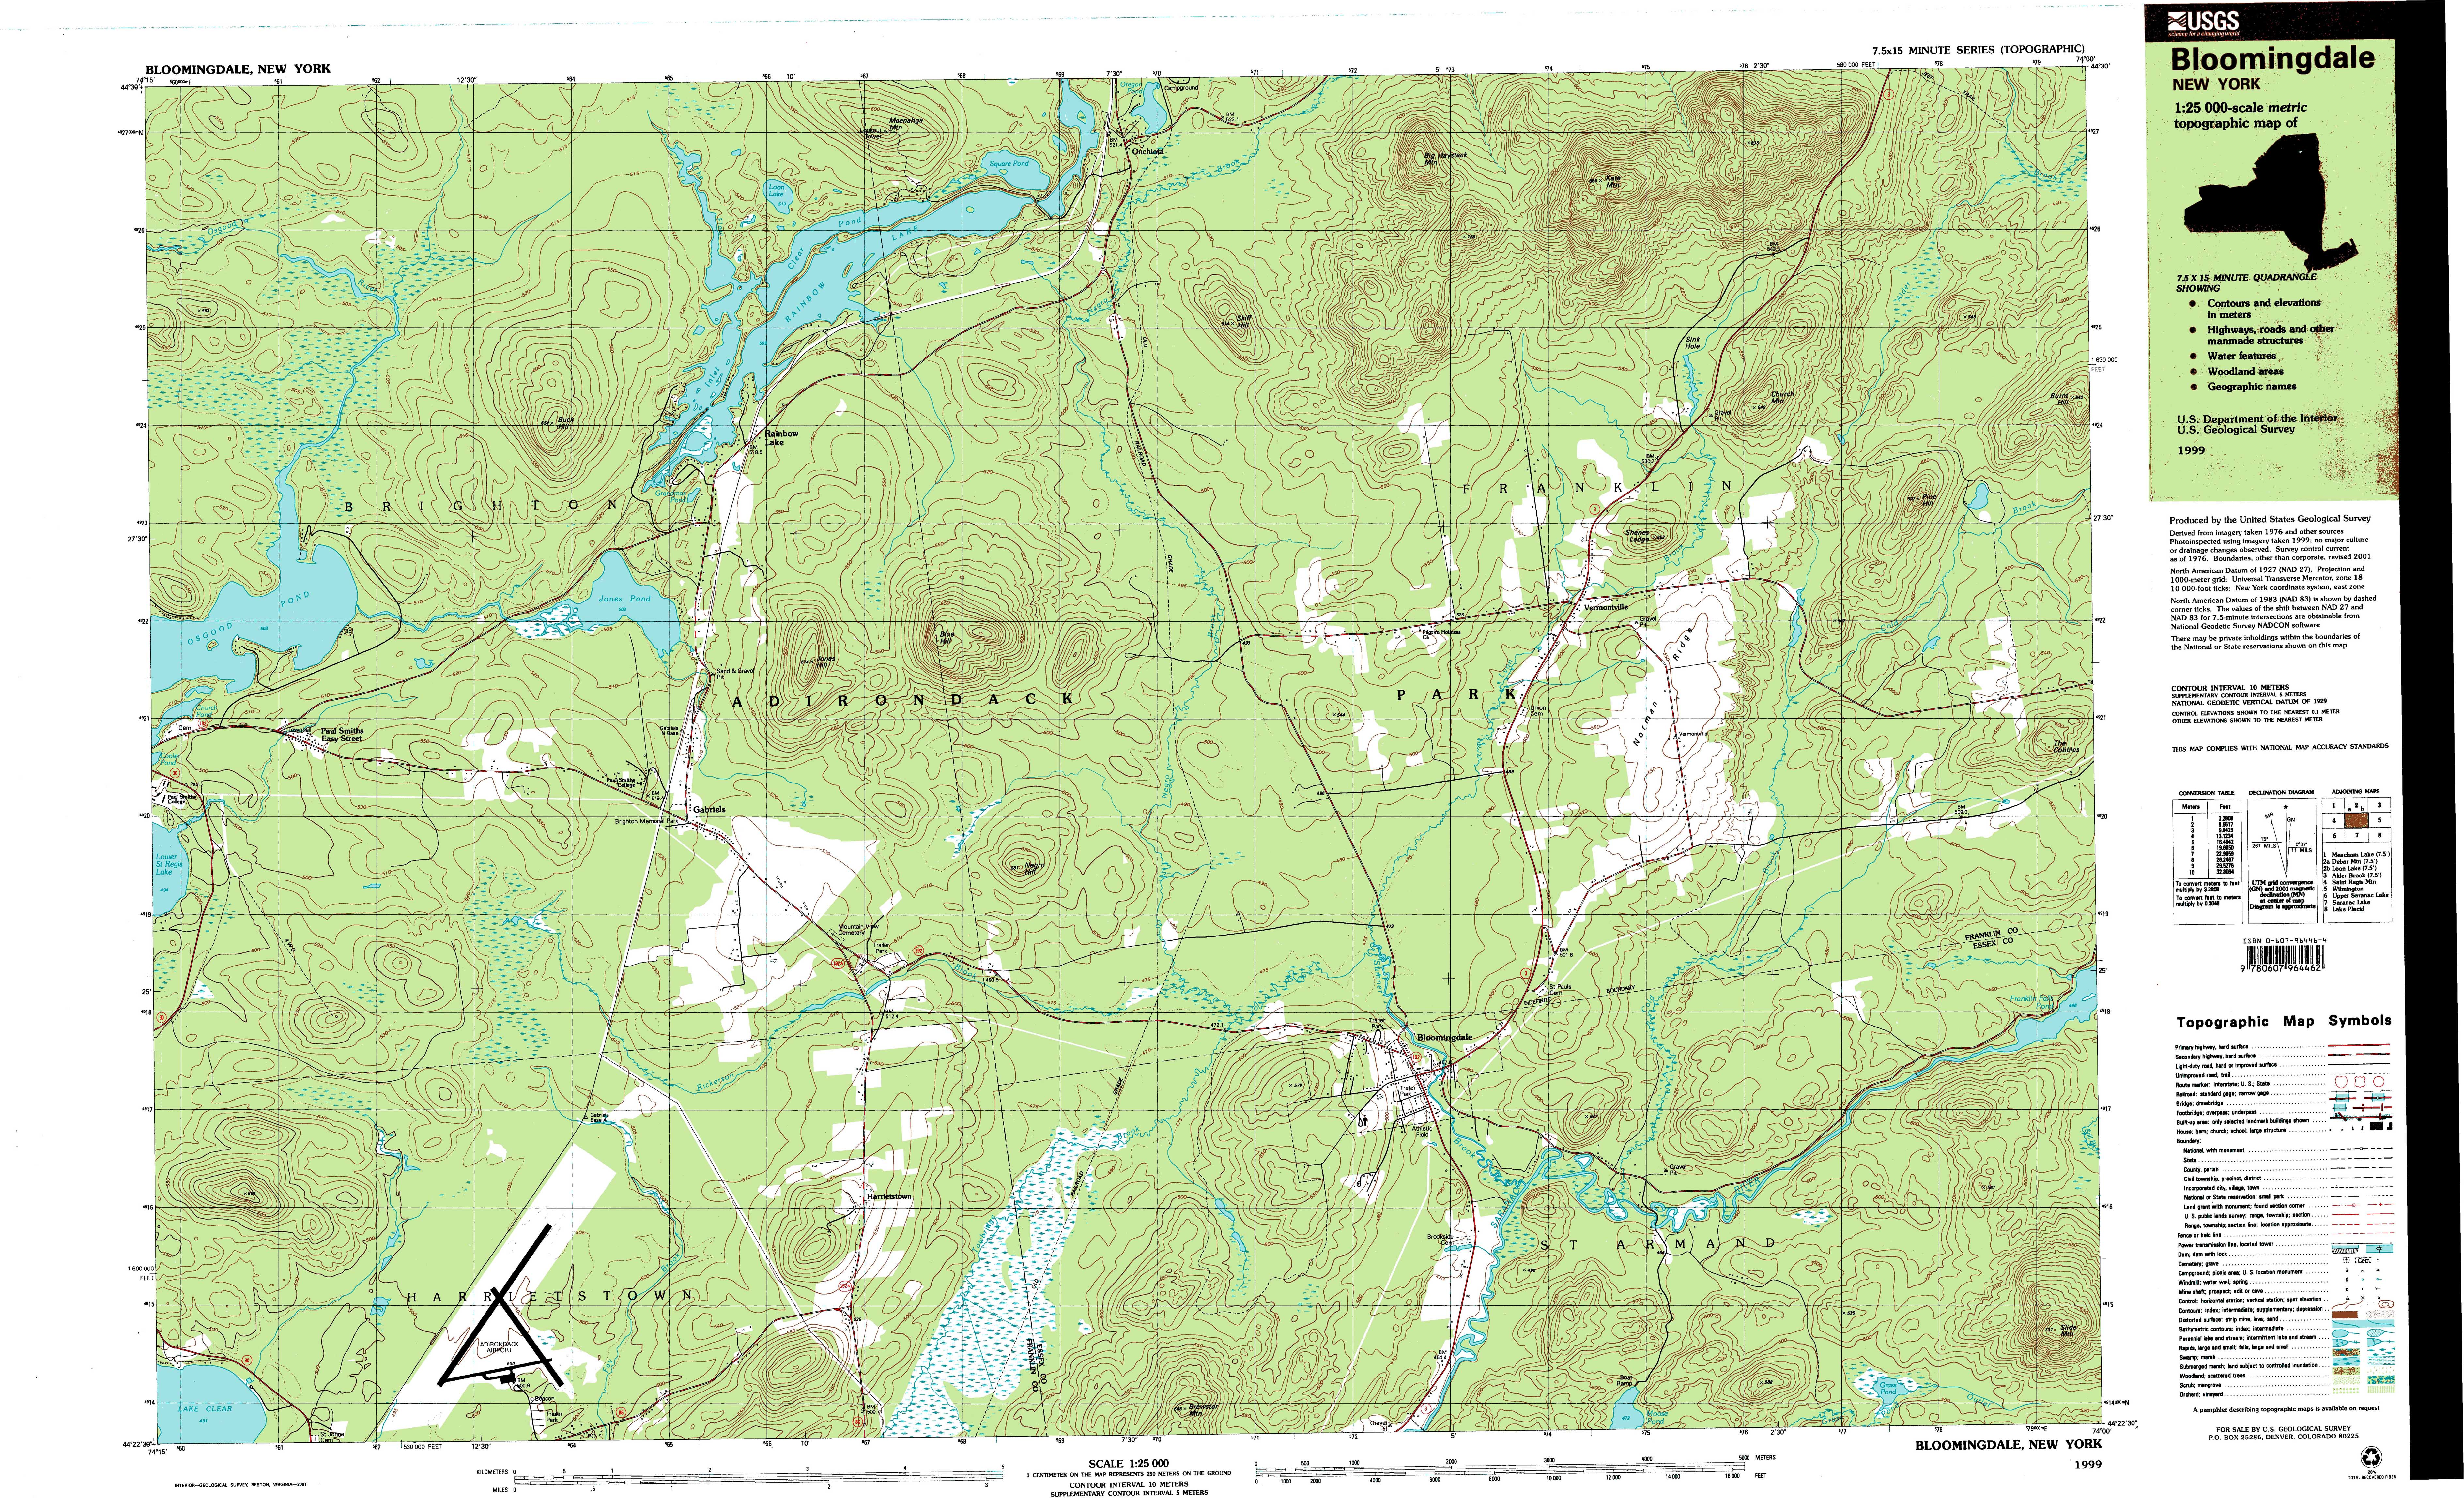 New York Topo Maps  Minute Topographic Maps  Scale - Topographic map of eastern us